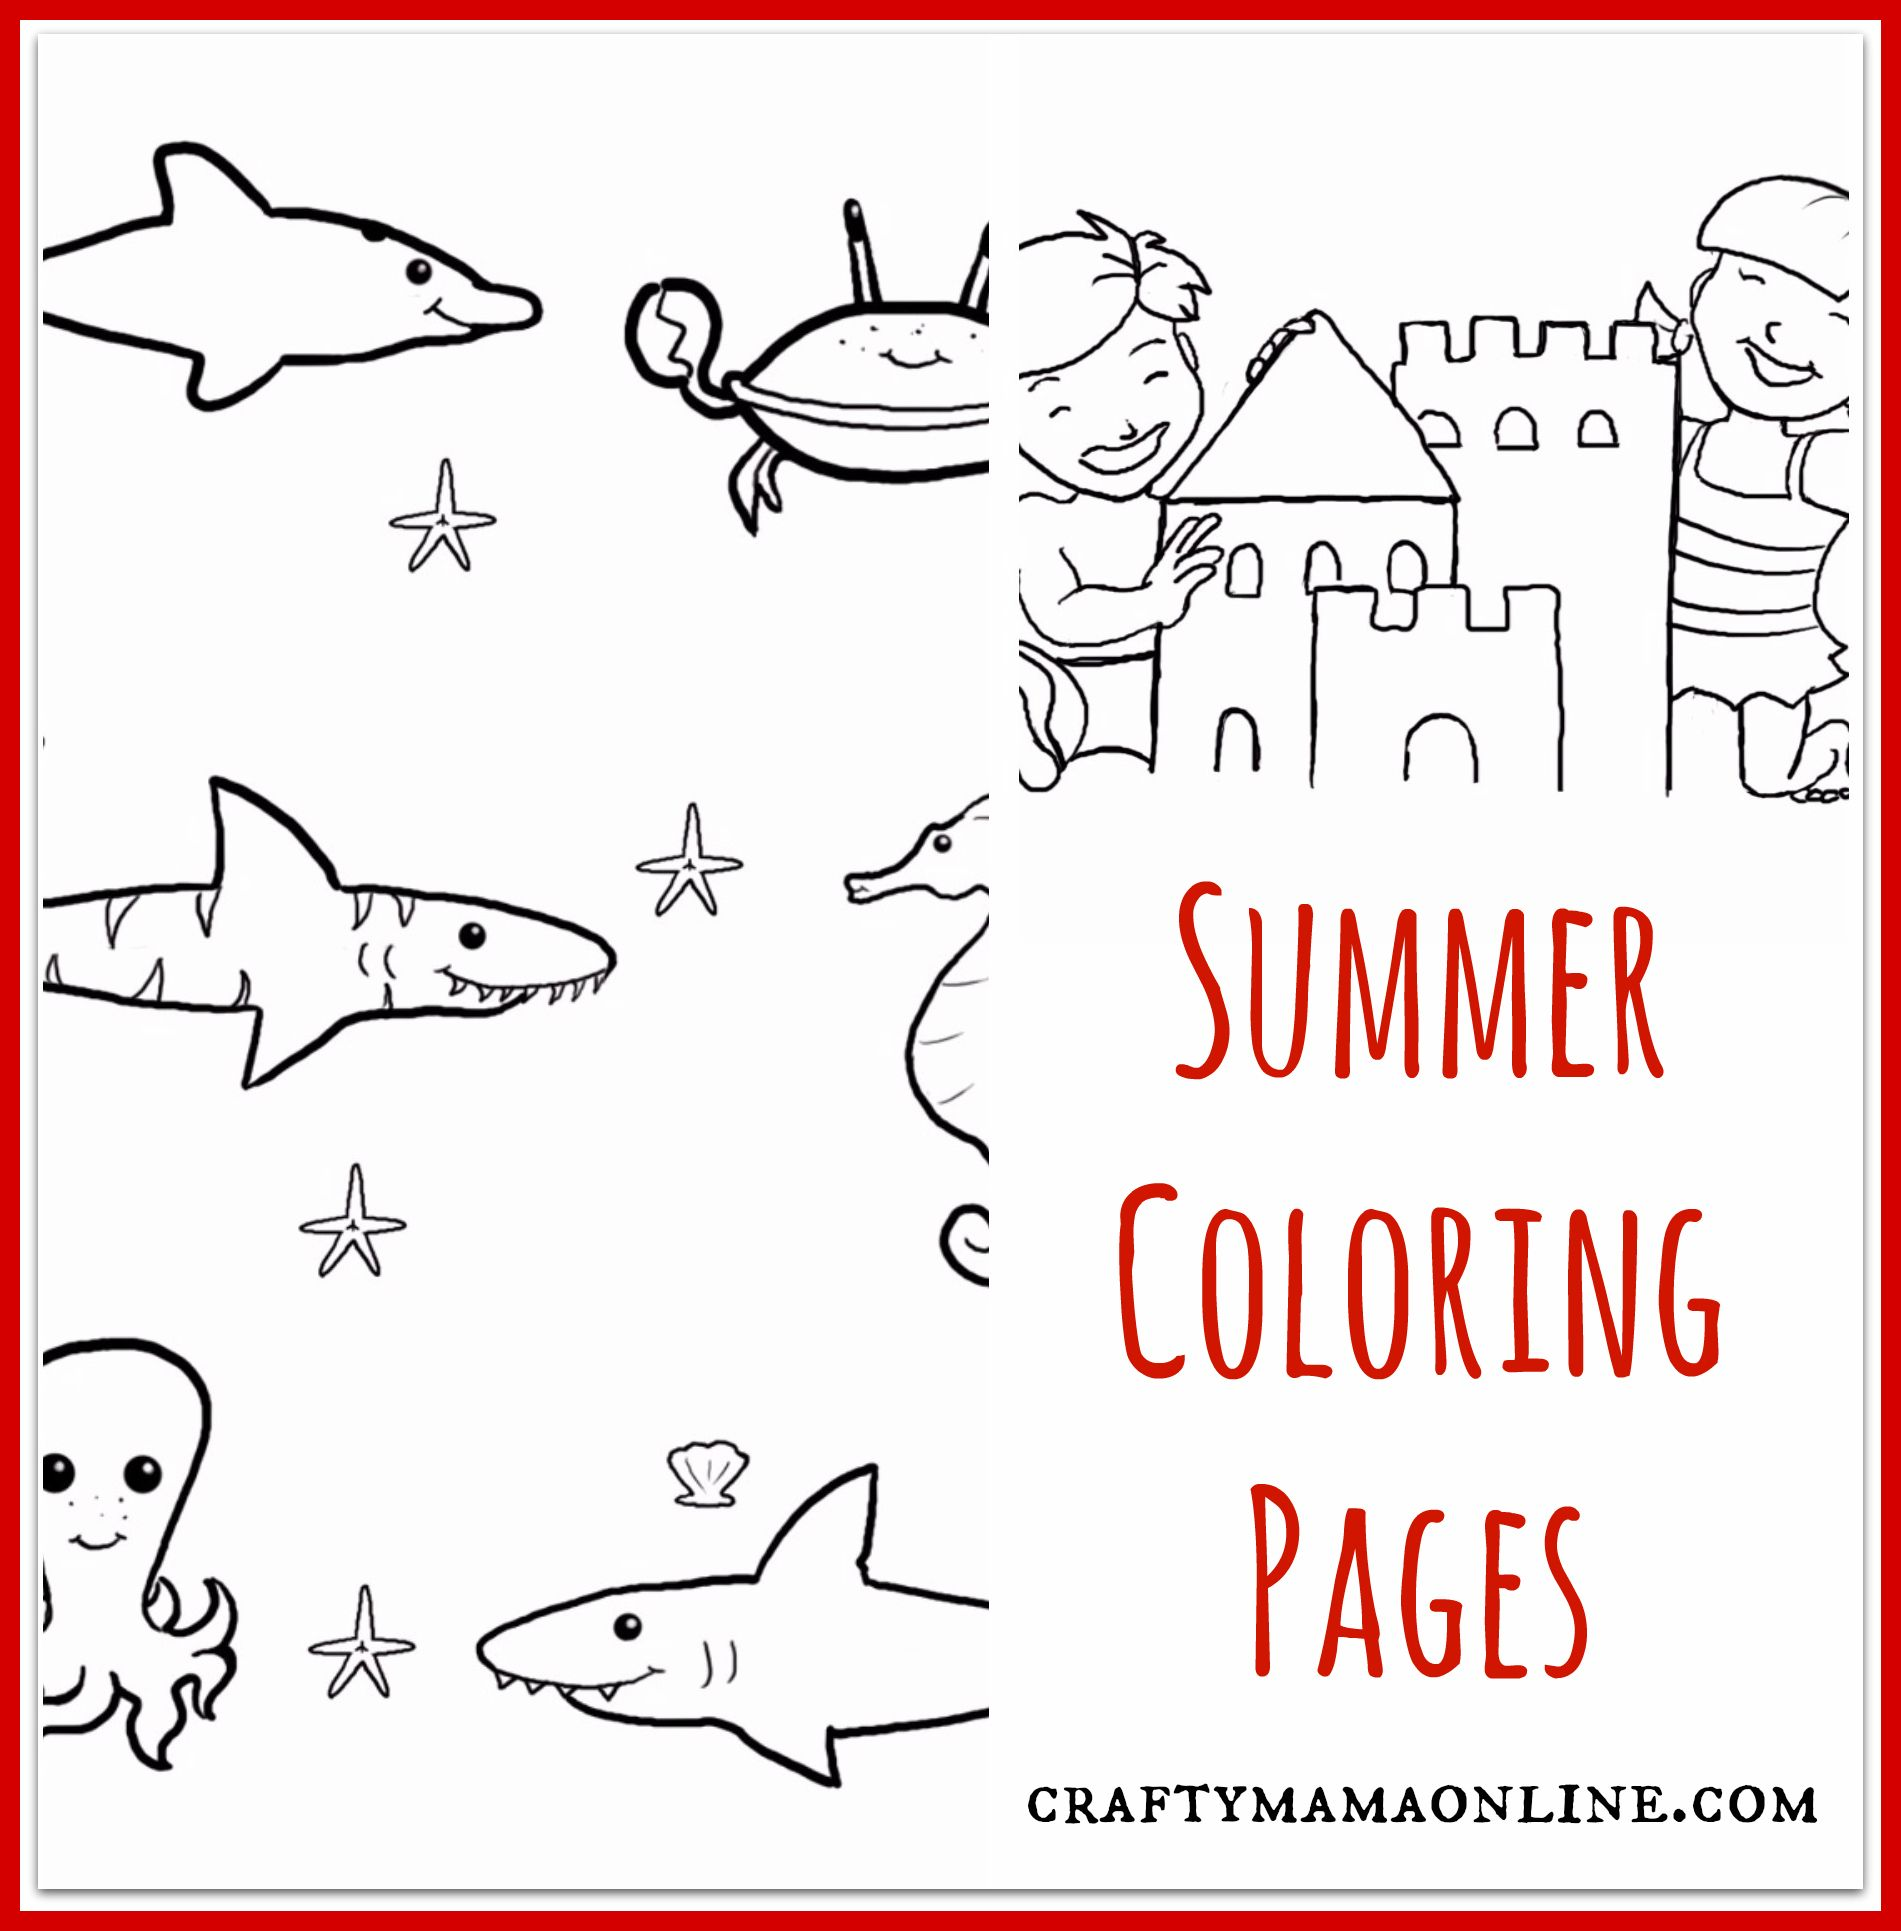 Summer Coloring Pages | Paper design, Summer and Free printable